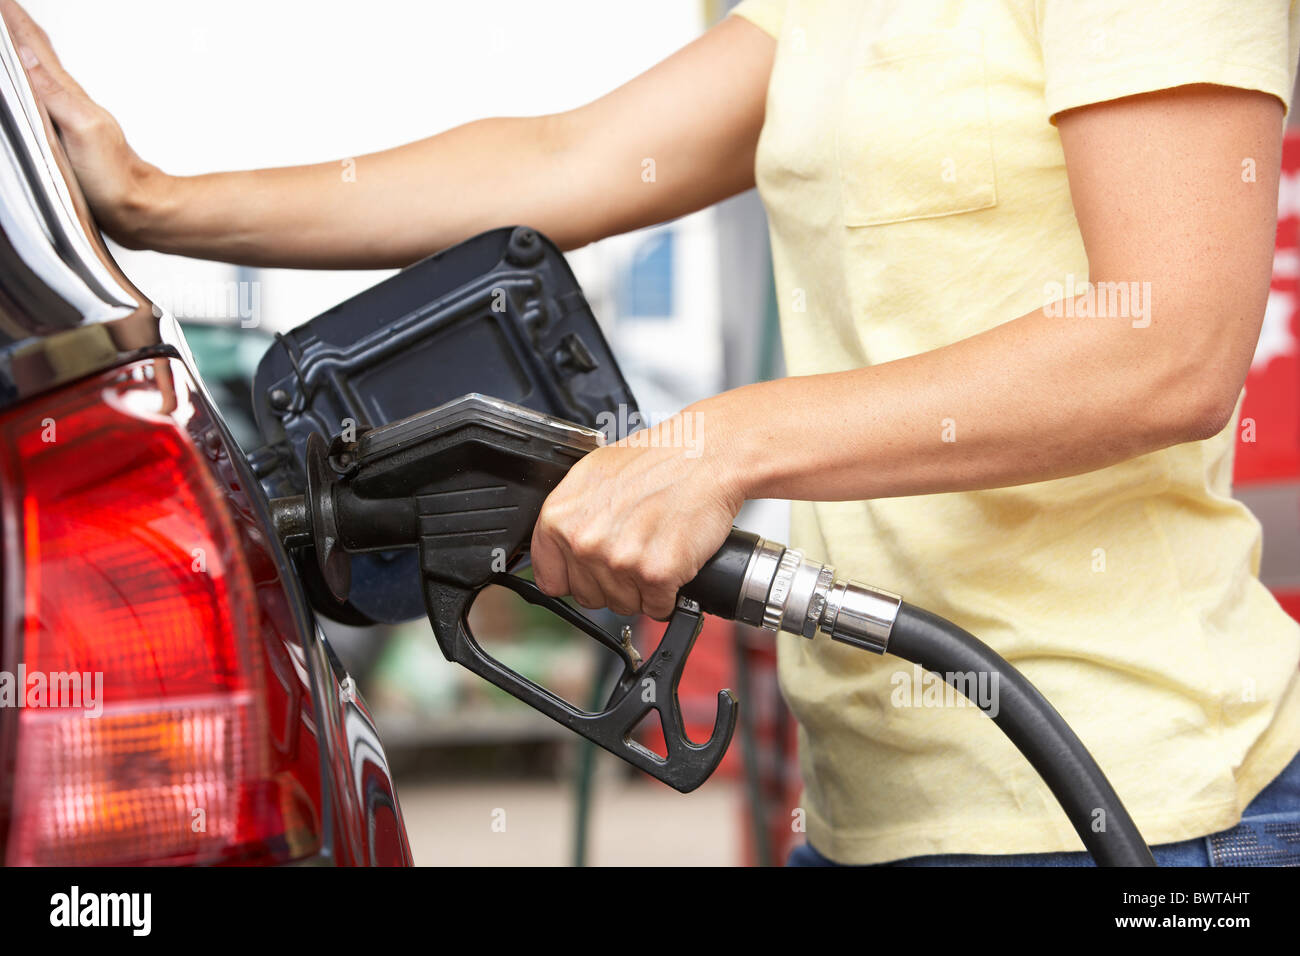 Detail Of Female Motorist Filling Car With Diesel At Petrol Station - Stock Image